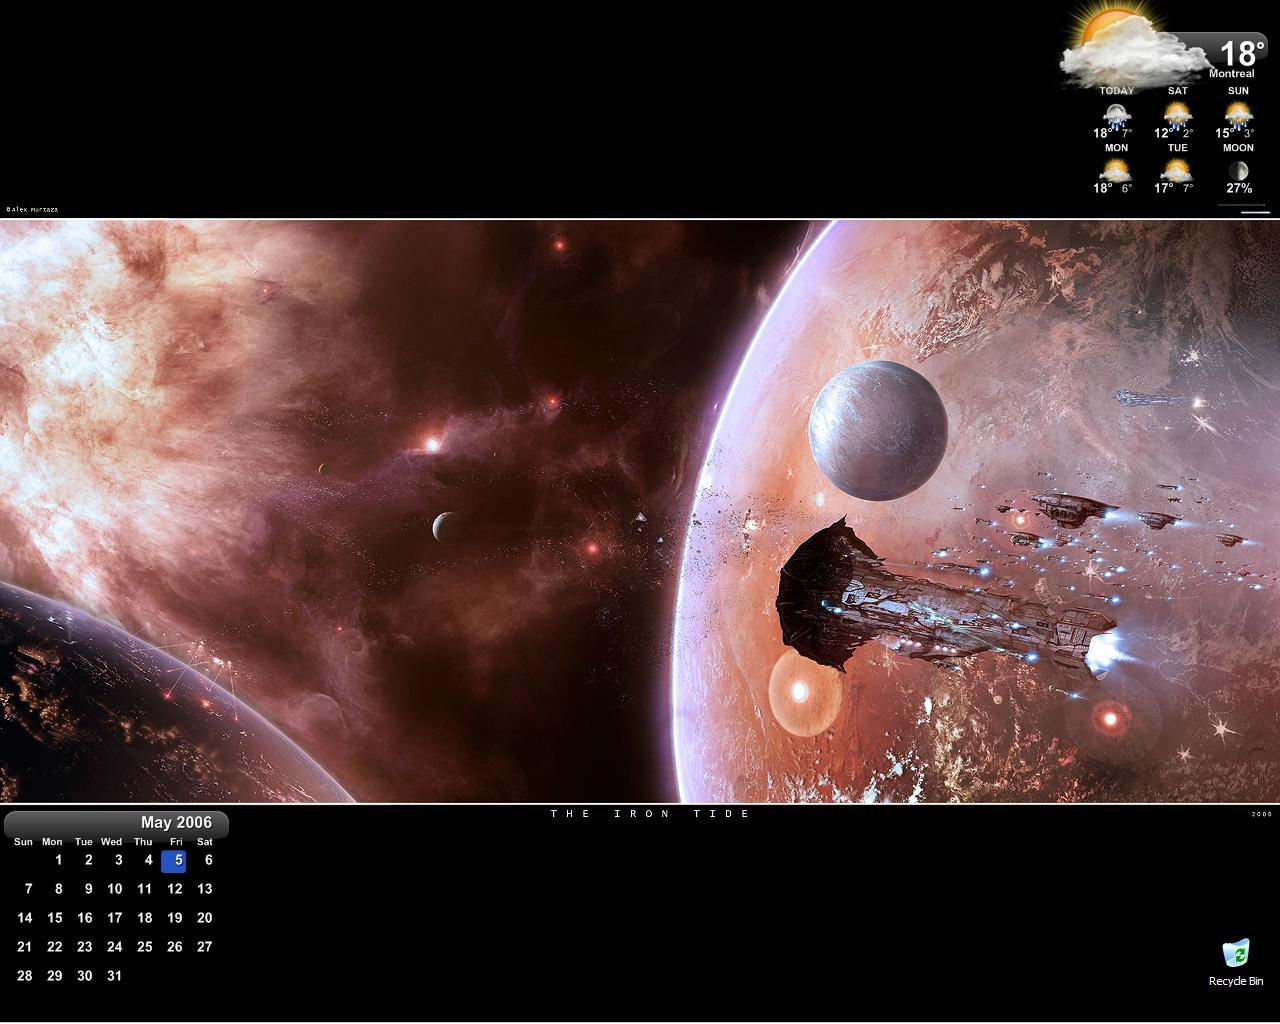 need more EvE wallpaper please! recall seeing one with a huge battle-scene